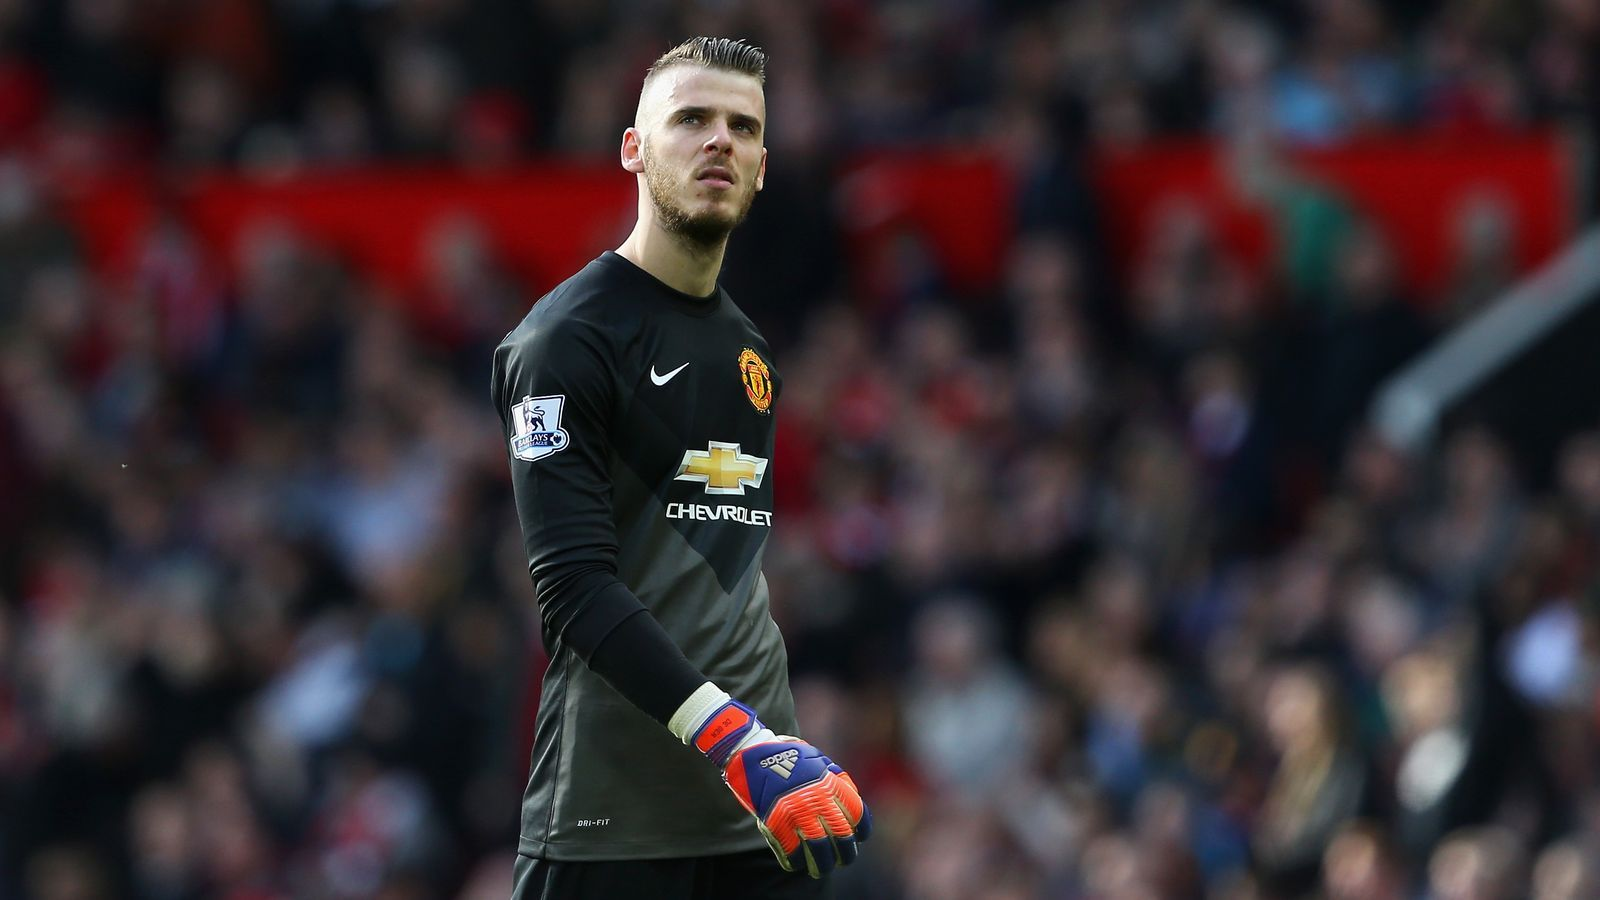 De Gea Determined To Join RM?